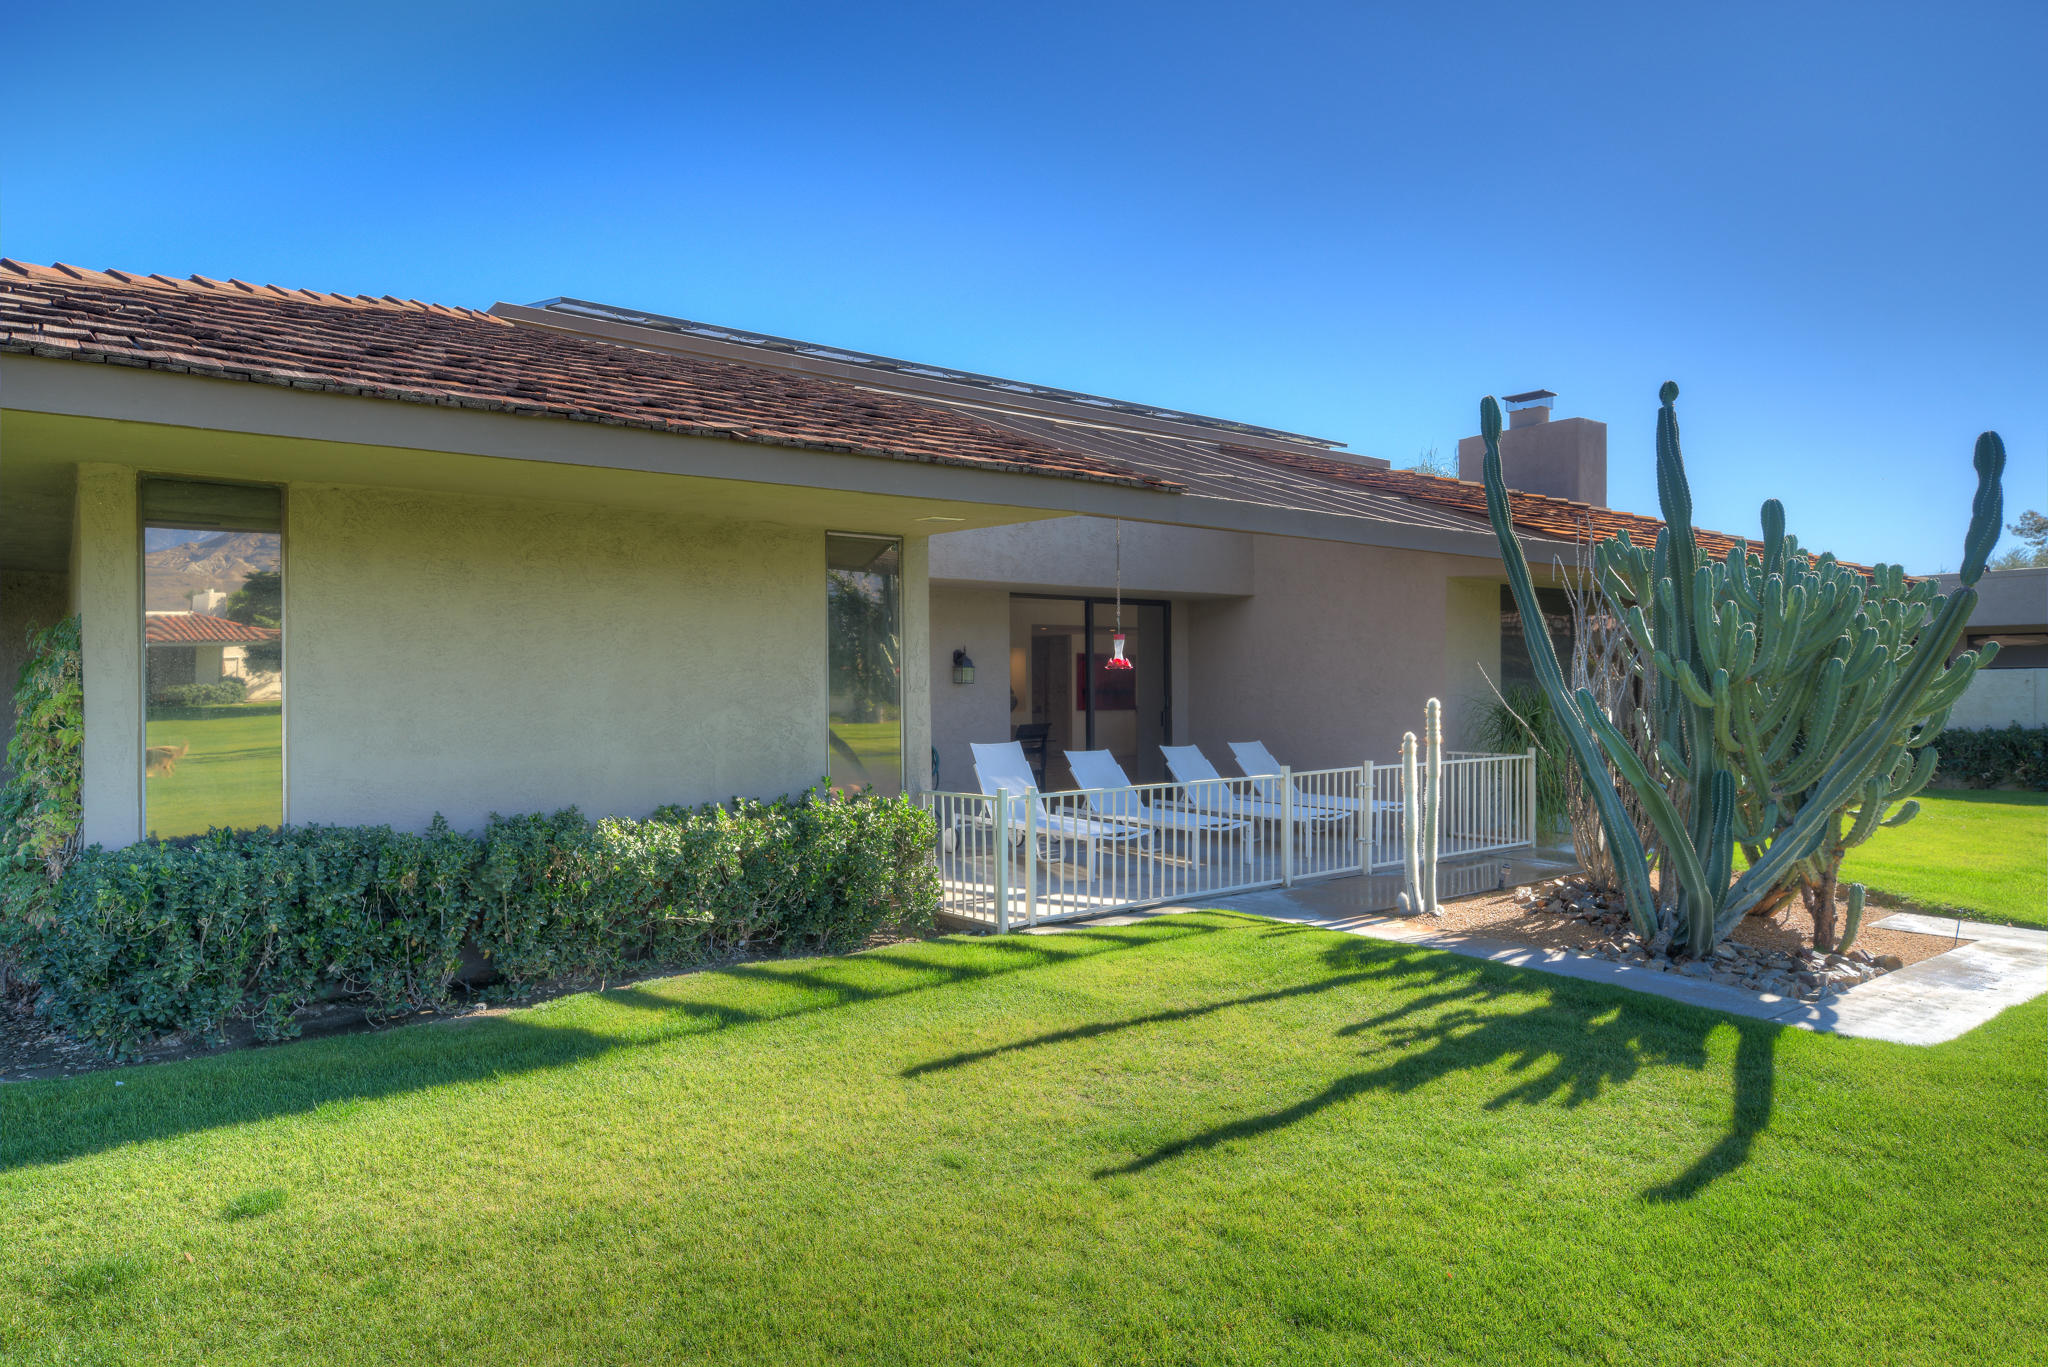 11 Whittier Court, Rancho Mirage, California 92270, 3 Bedrooms Bedrooms, ,3 BathroomsBathrooms,Residential,For Sale,11 Whittier Court,219038940